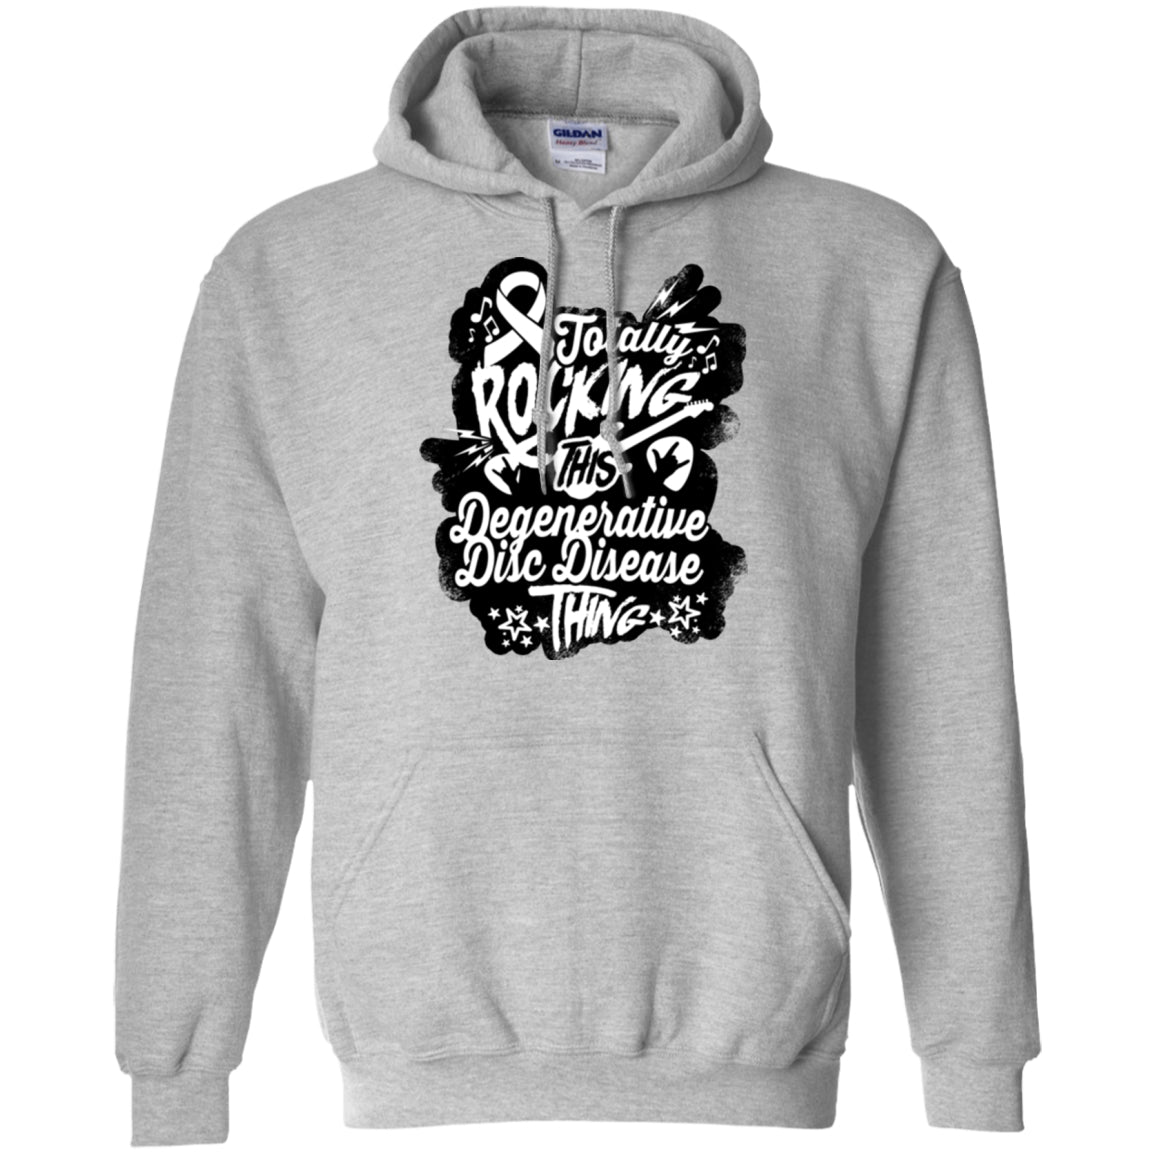 Rocking Degenerative Disc Disease Pullover Hoodie 8 oz. - The Unchargeables